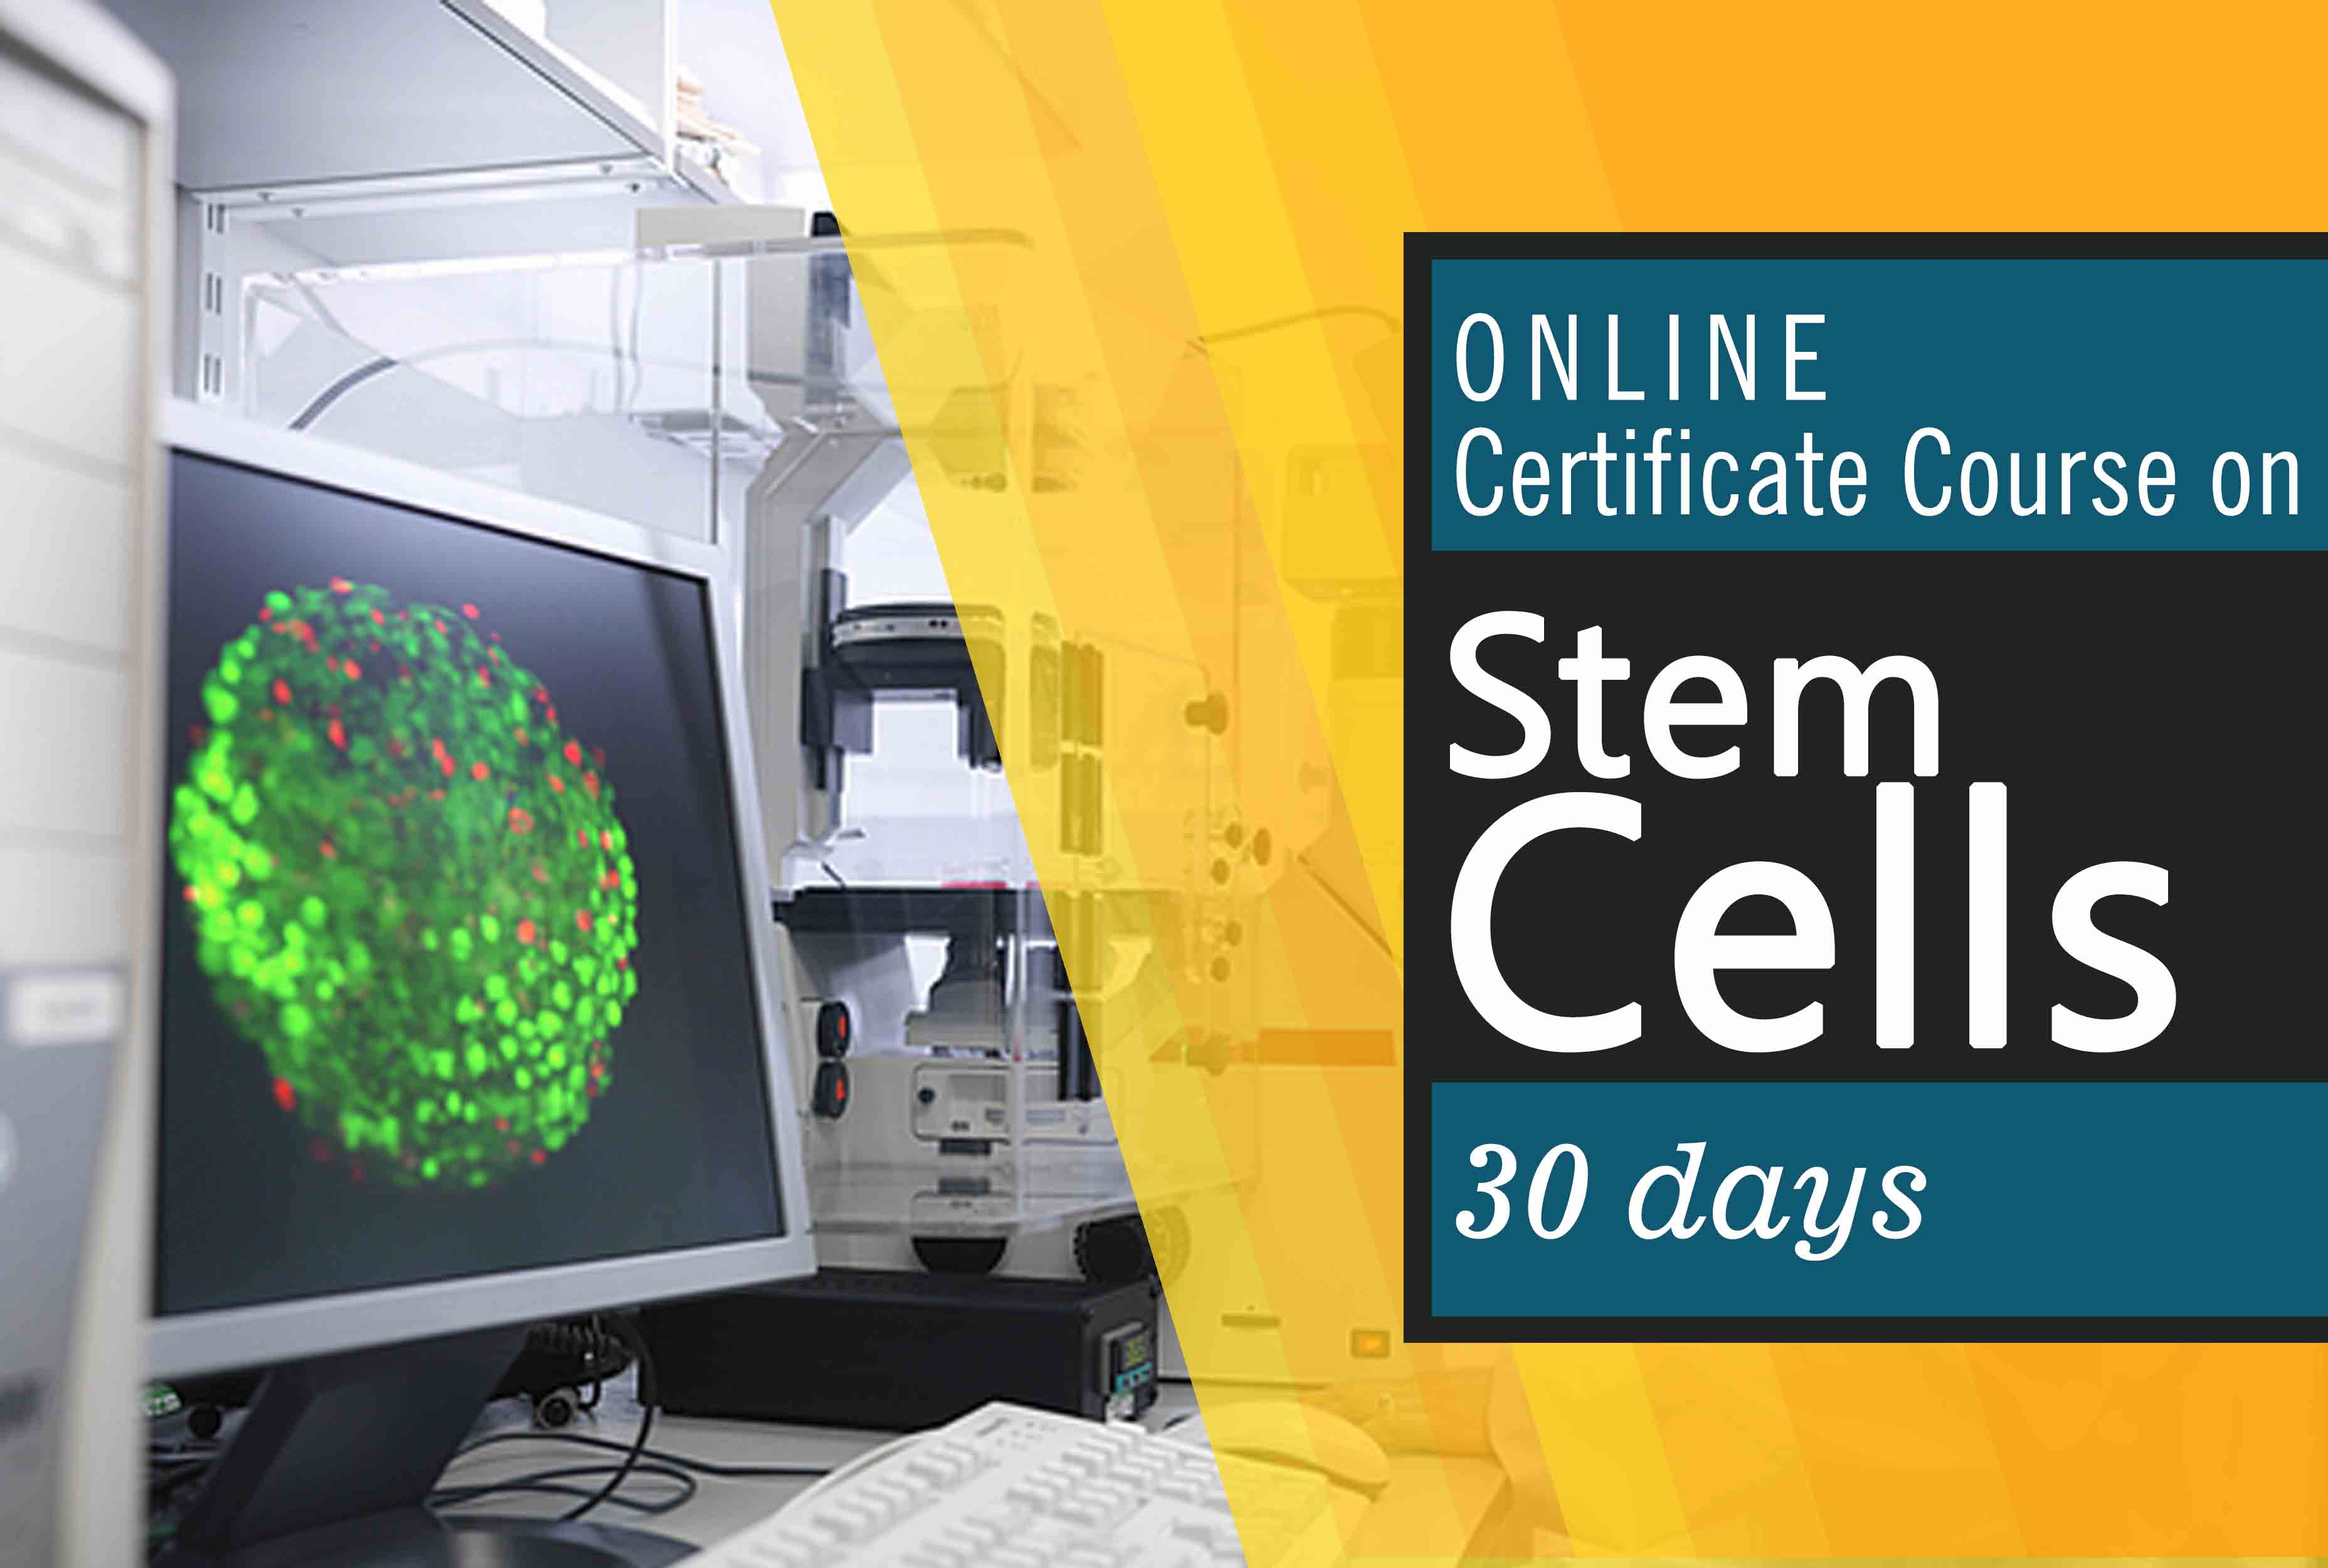 Certificate course on stem cells